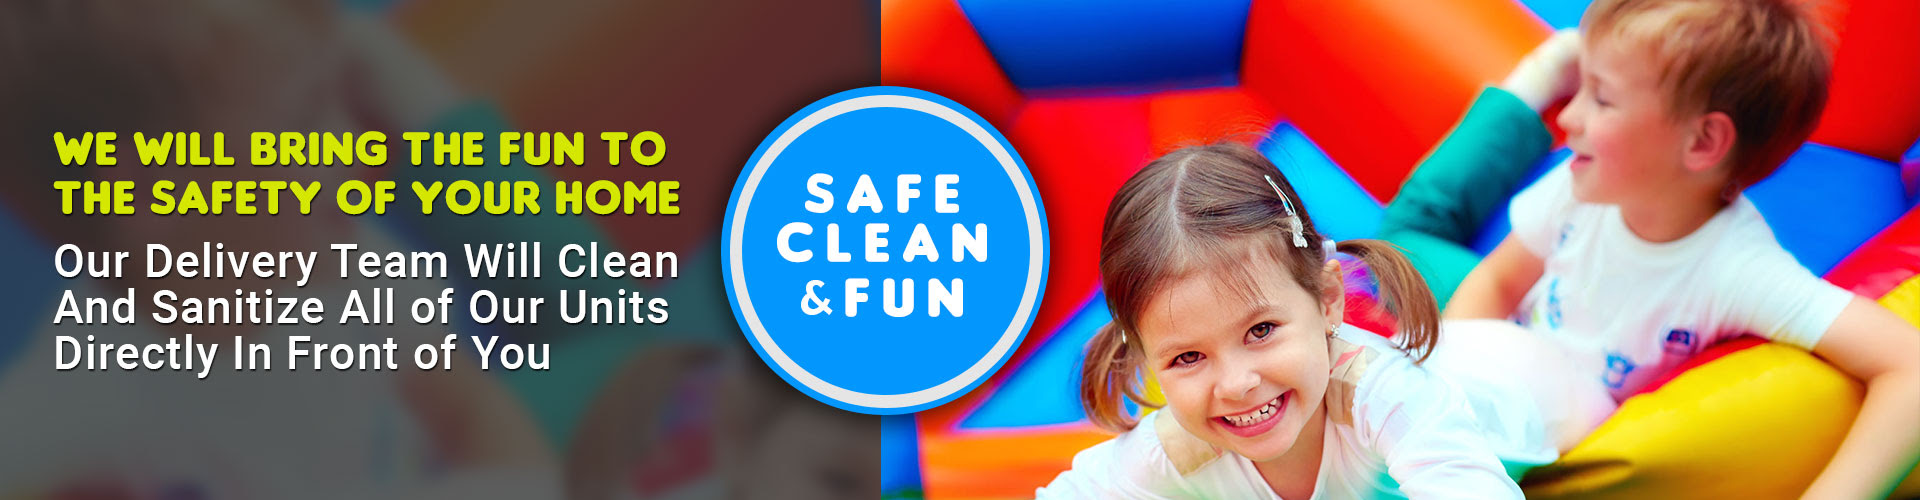 Houston Bounce House Rentals Are Clean and Safe